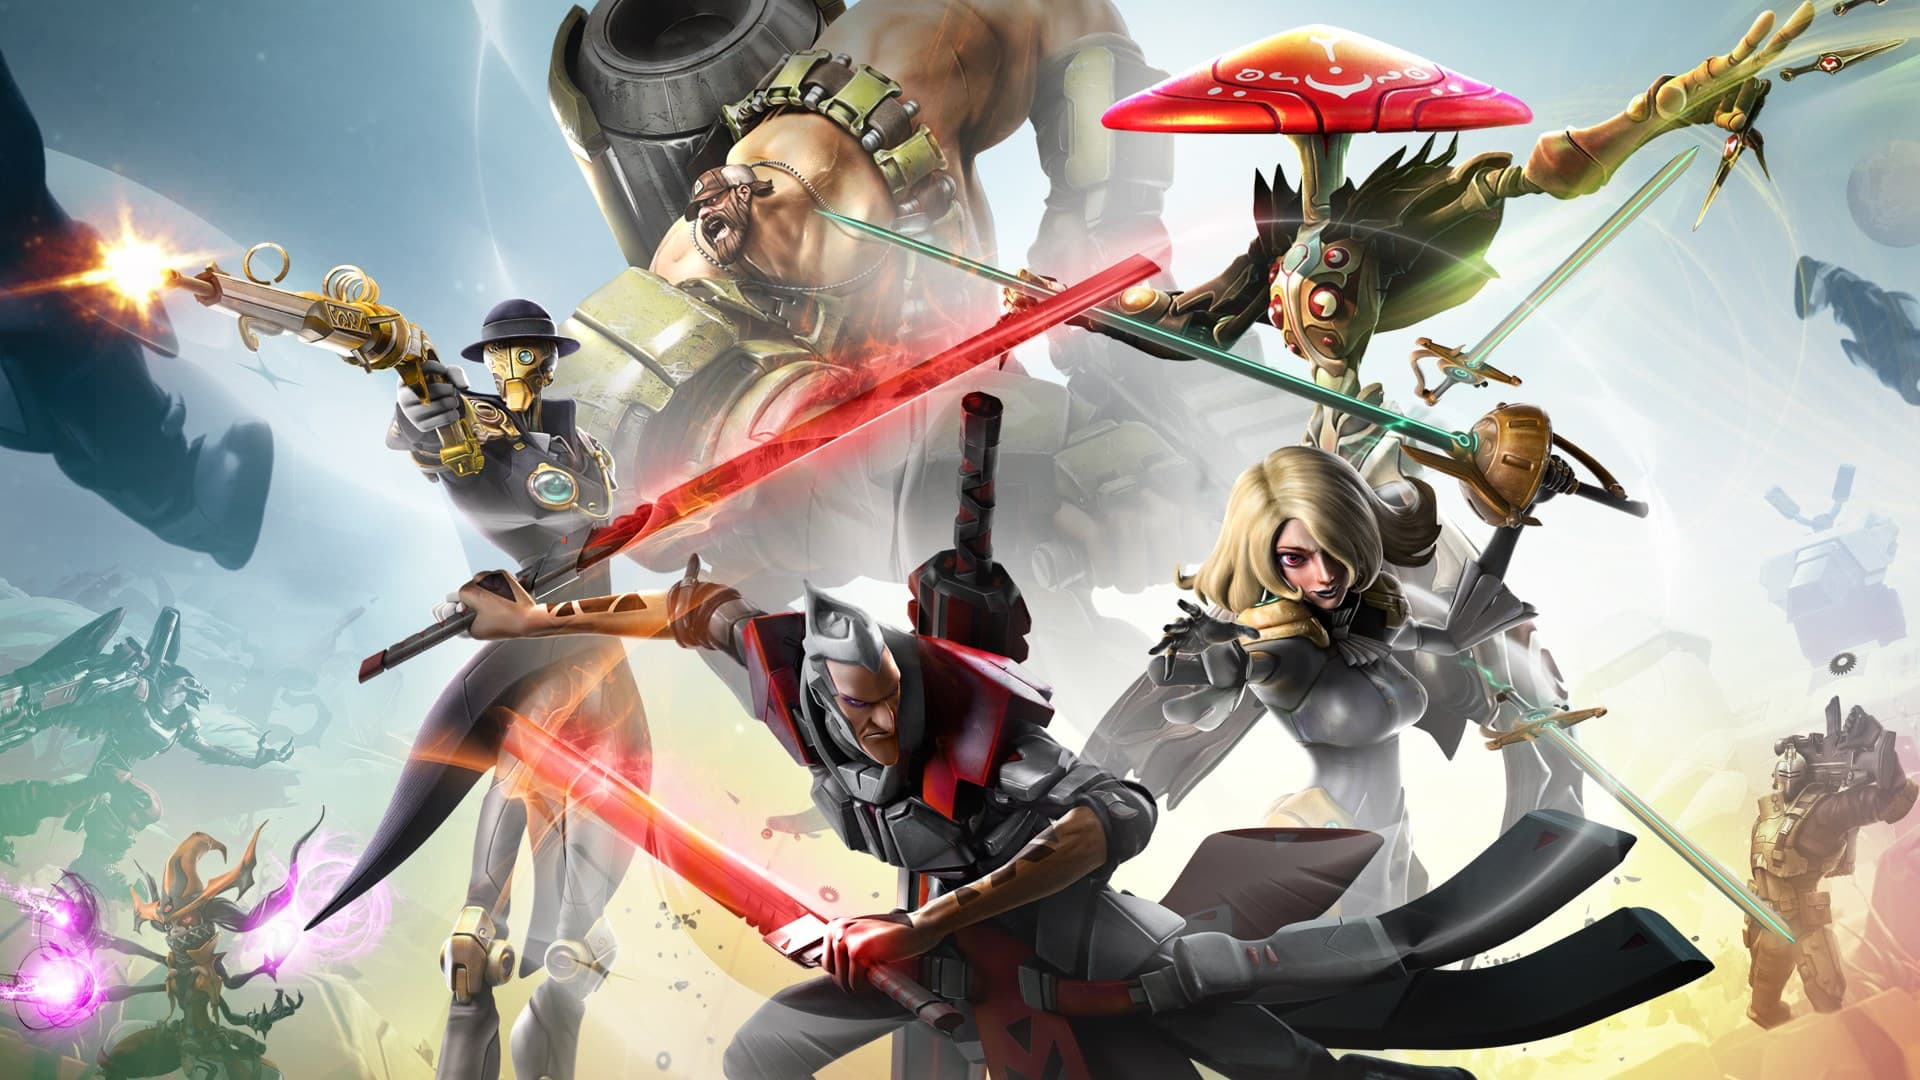 Battleborn is now completely closed and buried